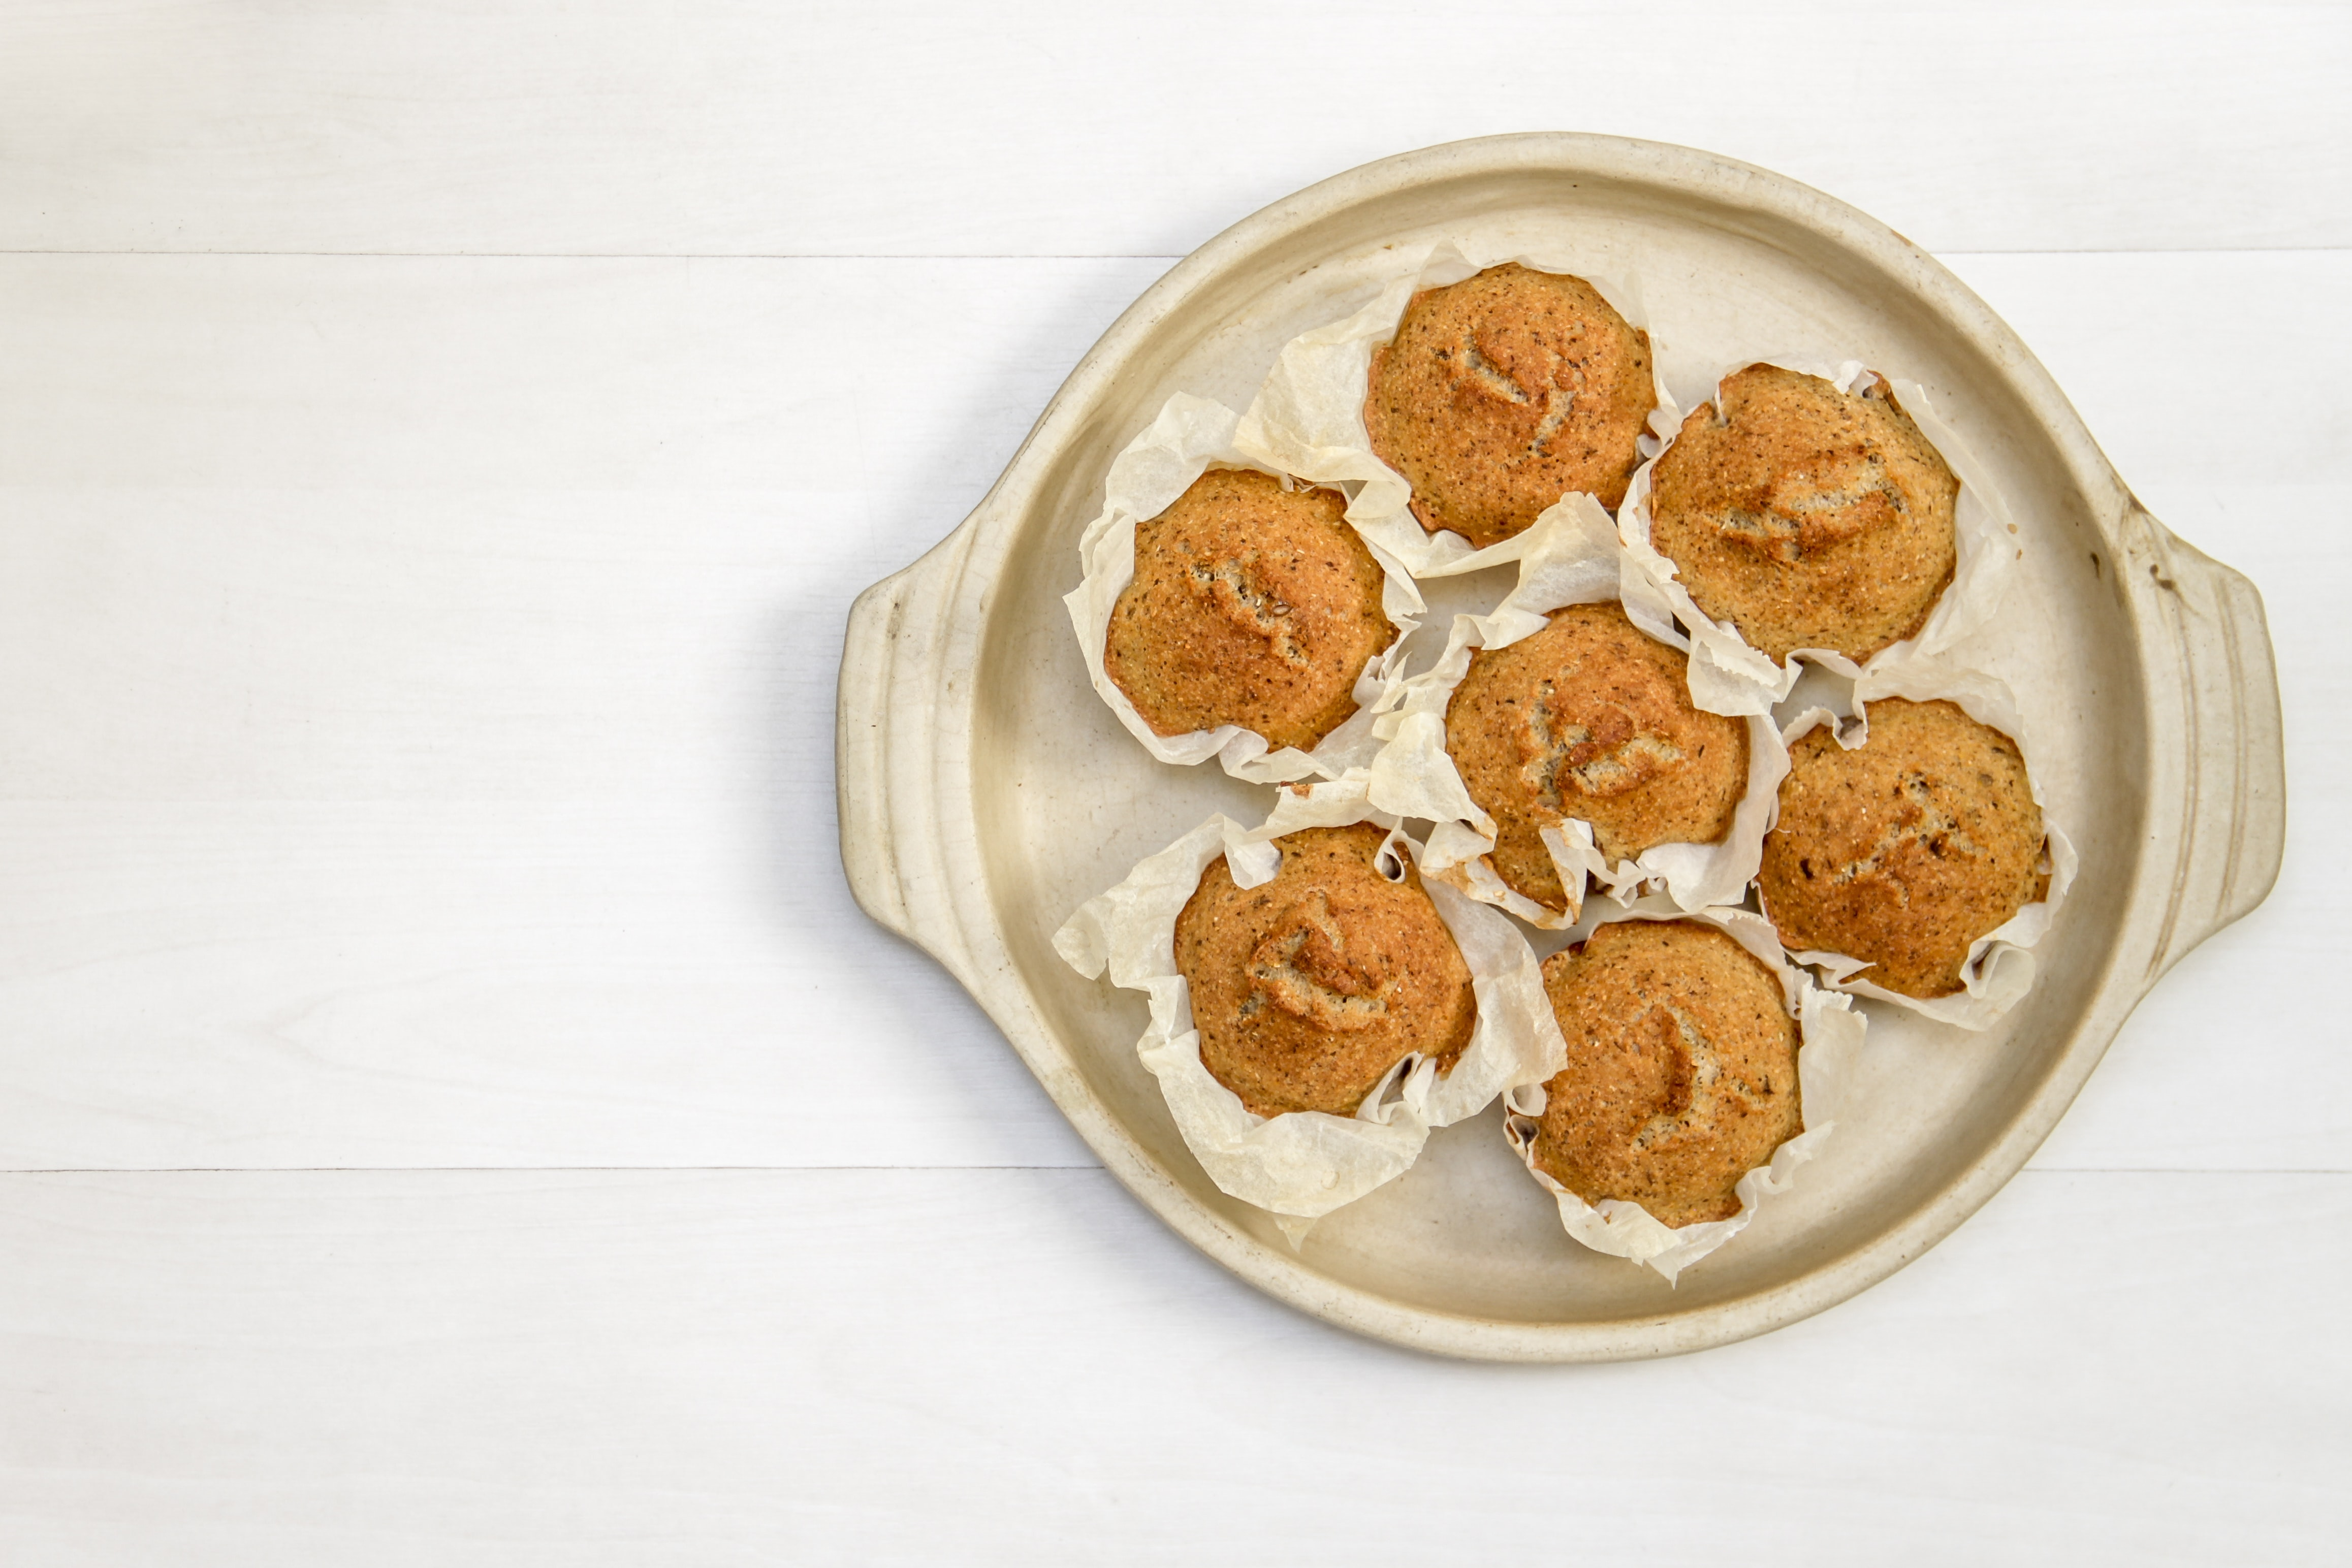 cupcakes on brown plate